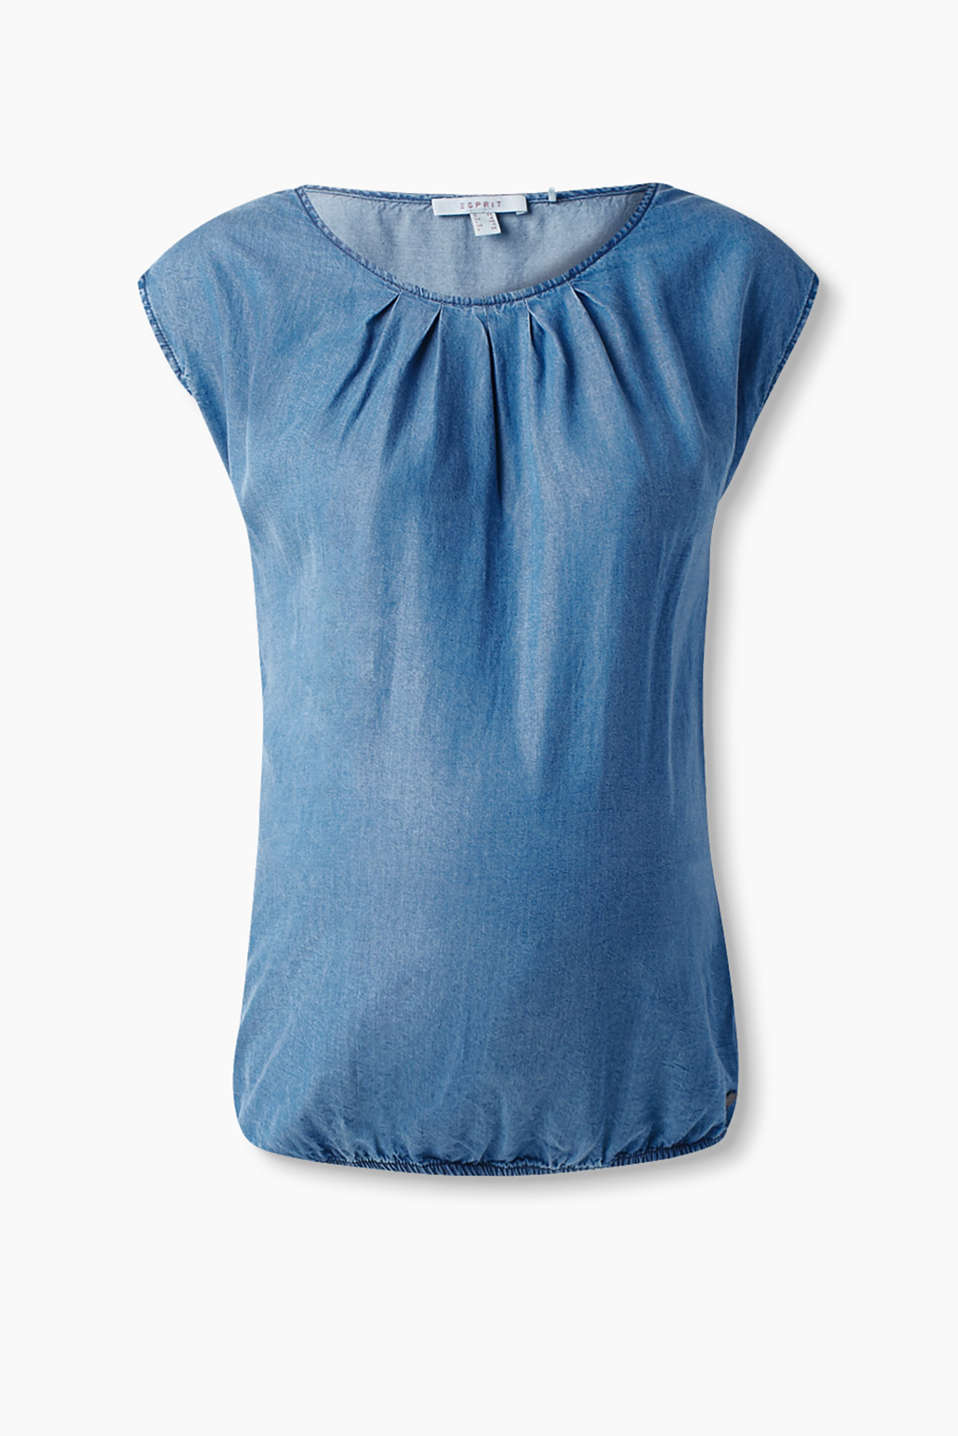 with a pleated neckline and an elasticated hem